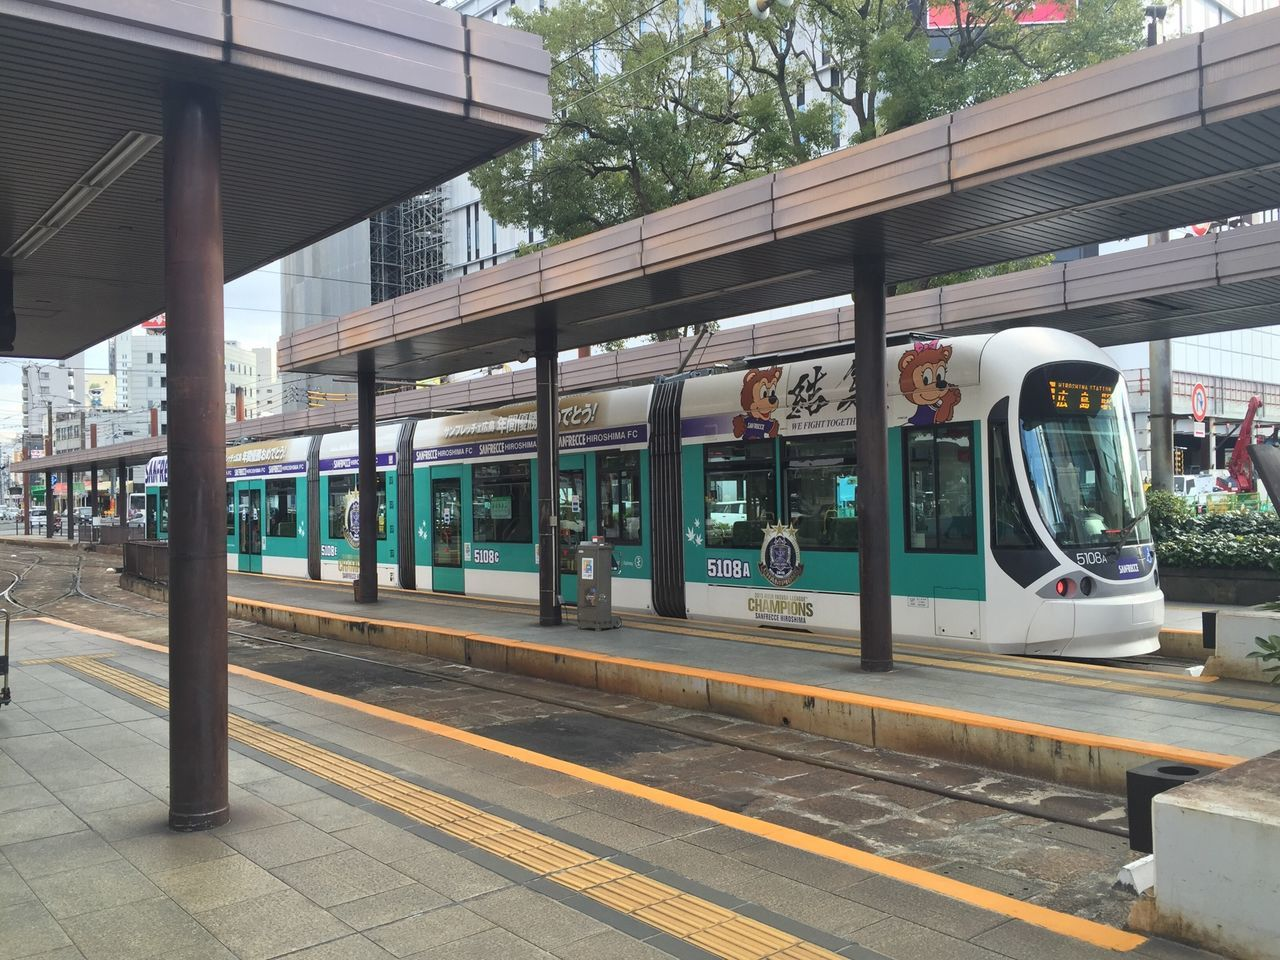 Hiroden Public Transportation Hiroshima Commuting Japan Iphone6 IPhoneography Trainstation